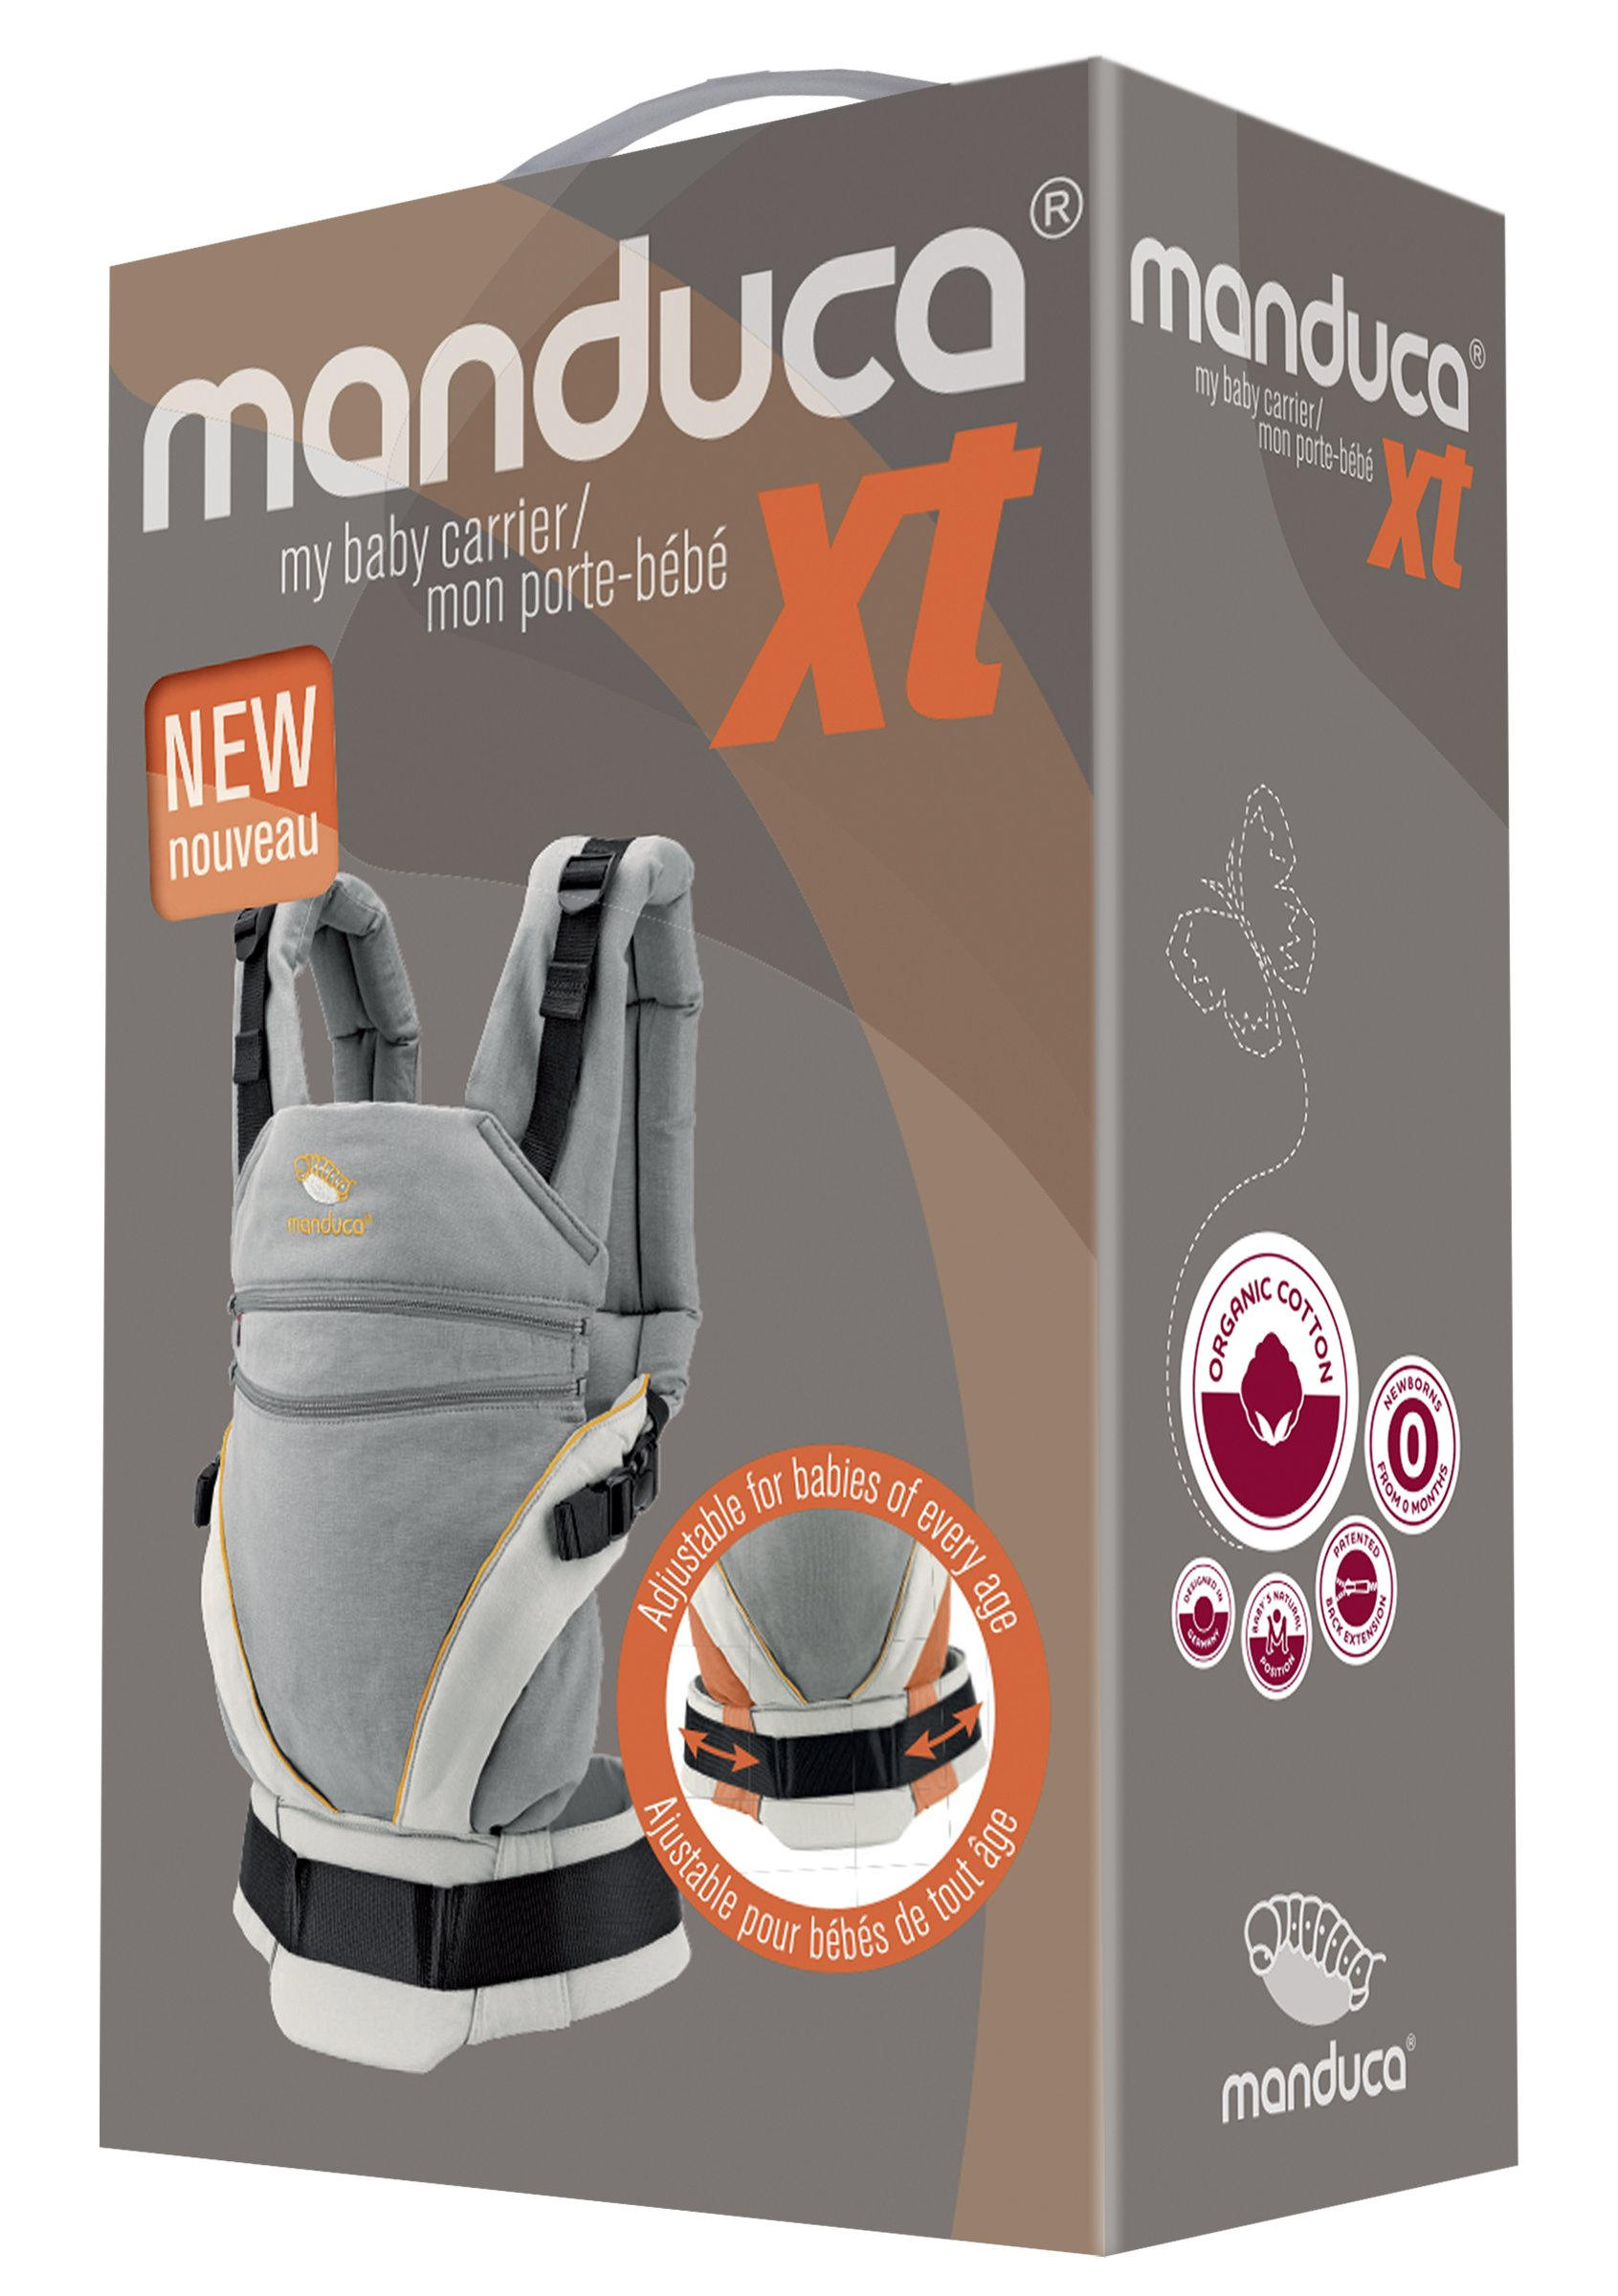 manduca XT > grey- orange < Baby Carrier with Adjustable Seat, 3 Carrying Positions (Front, Hip & Back), No Infant Insert Needed, Organic Cotton, Grows with your Baby from Birth to Toddler (3.5- 20kg) Manduca This baby carrier adapts from newborn to toddler. Infinitely adjustable seat (16-50cm) without buttons, knots, Velcro or cord system. Novel tension arches support baby's spine & hip Three height options thanks to the patented back extension & integrated zip-in. Multifunctional headrest (classic hood or rolled up as neck support). No accessories needed. One Size 3 carry positions: front, hip and back carrier. Not intended for face-out position. Supports the squat-spread position (M-Position) 10